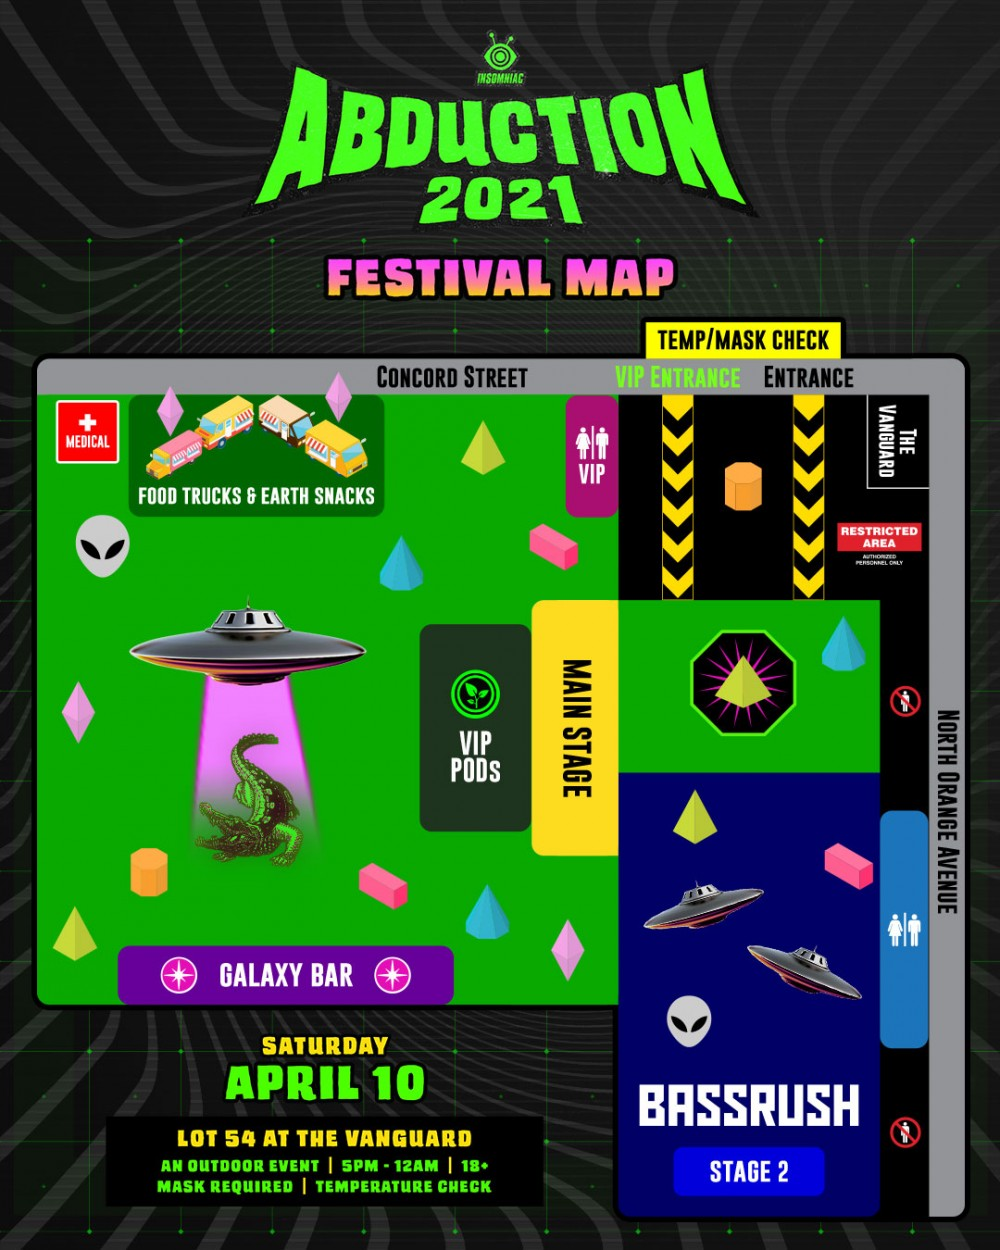 Abduction 2021